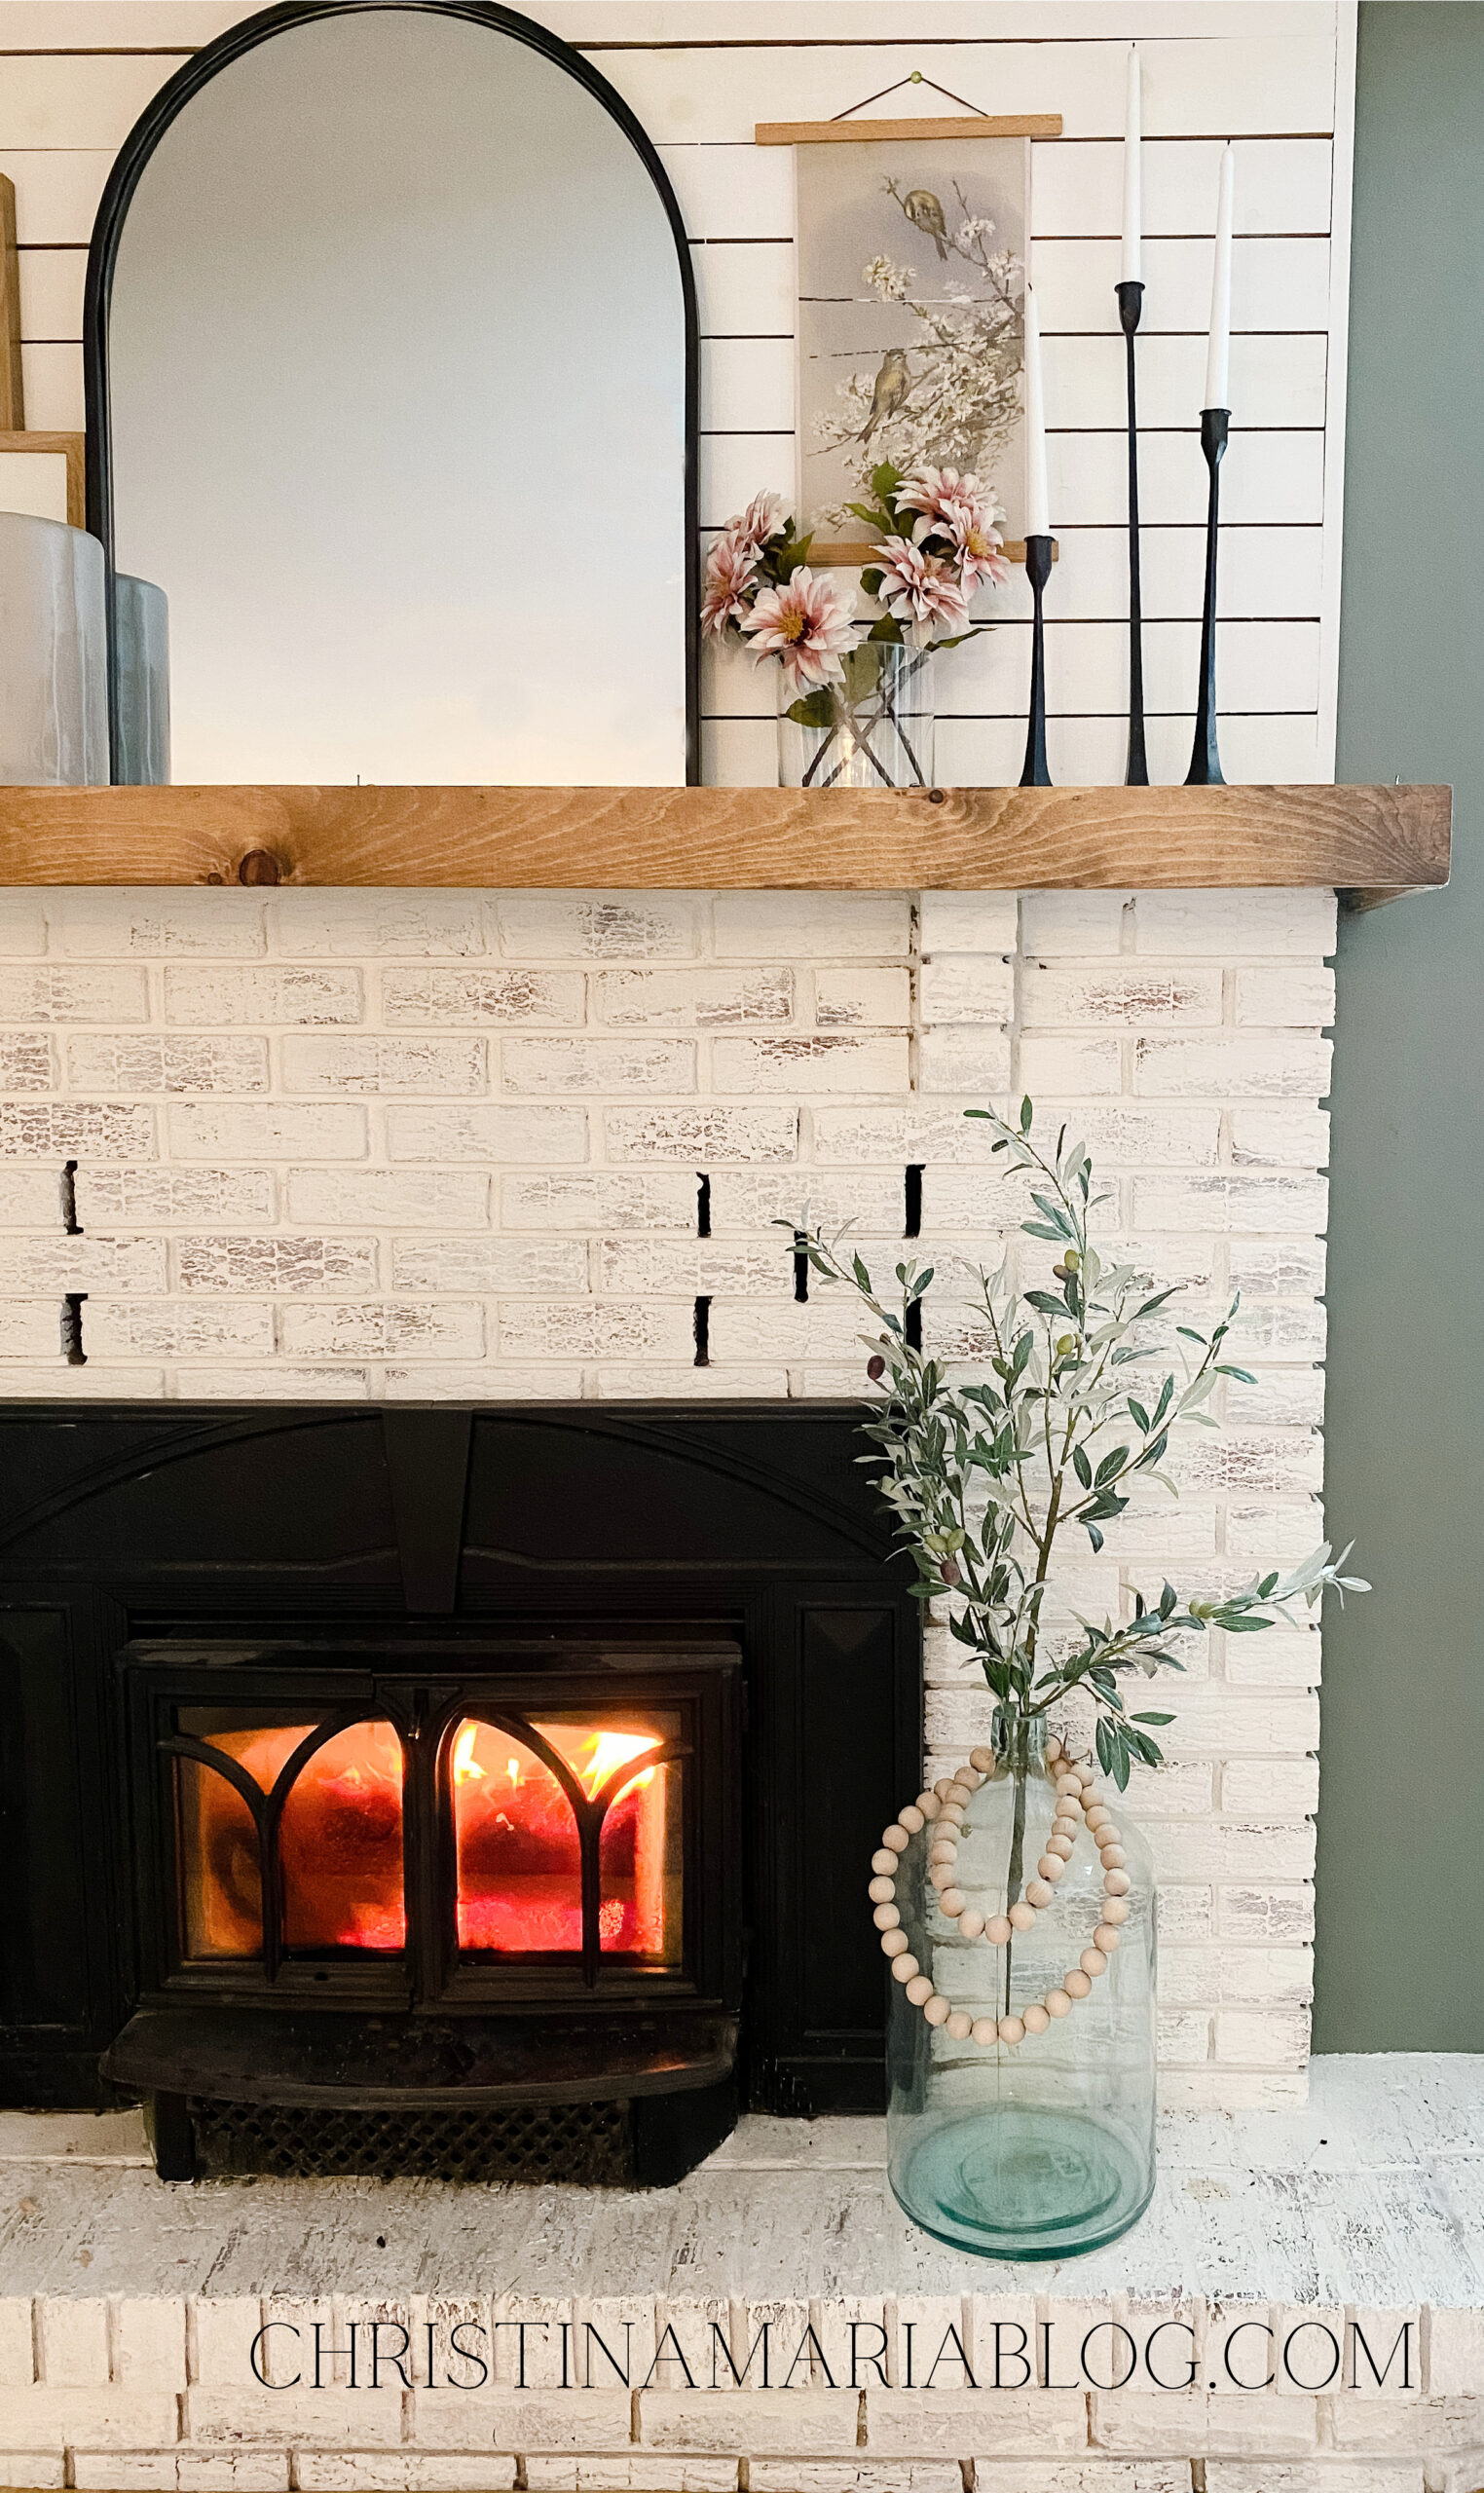 Early spring decorating: spring mantel + free prints for you